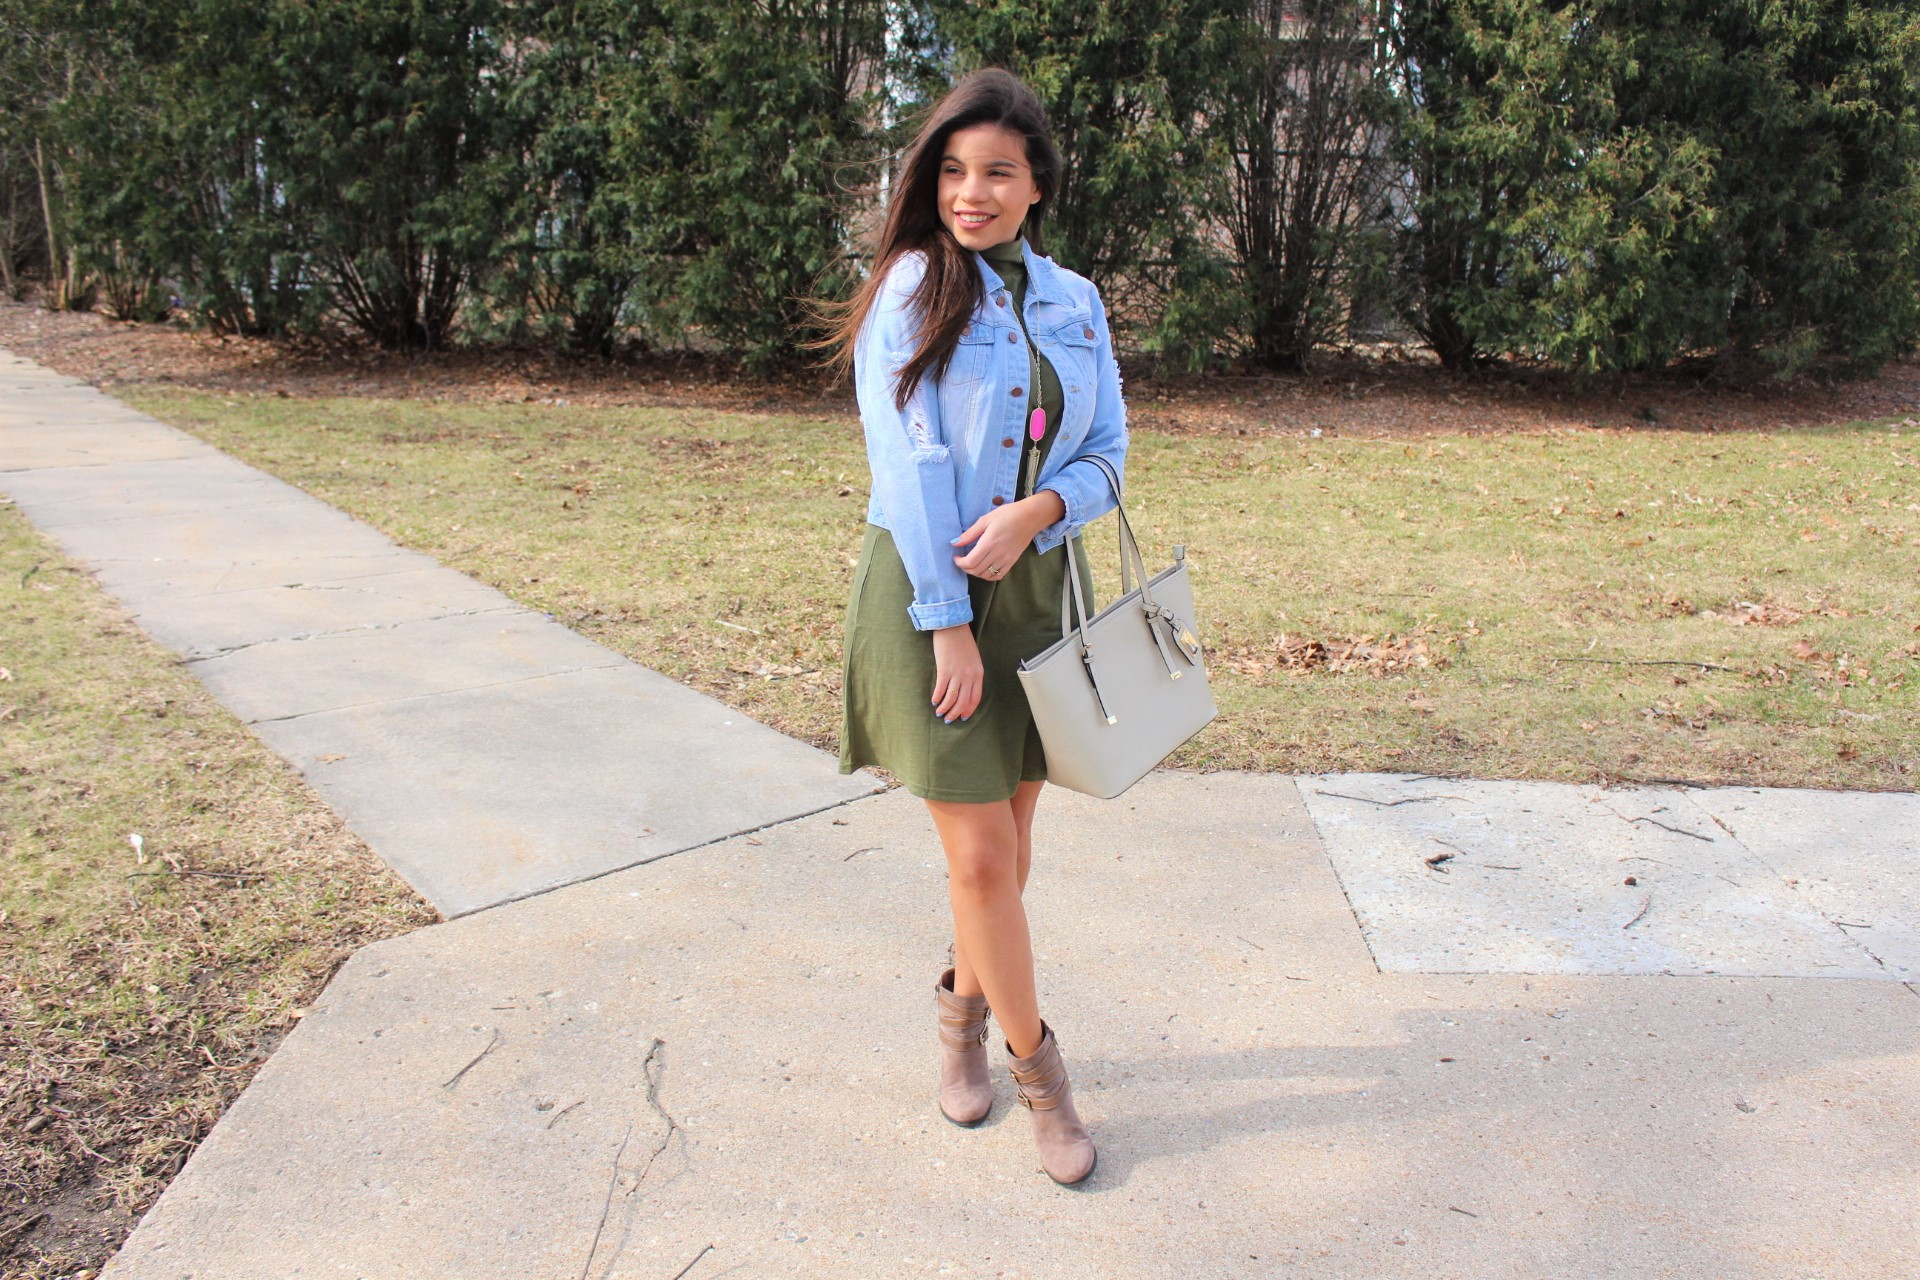 makeme chic military dress ootd jean jacket ALDO spring outfit handbag accesories ripped jean jacket perfect spring outfit olive dress outfit by alejandra avila